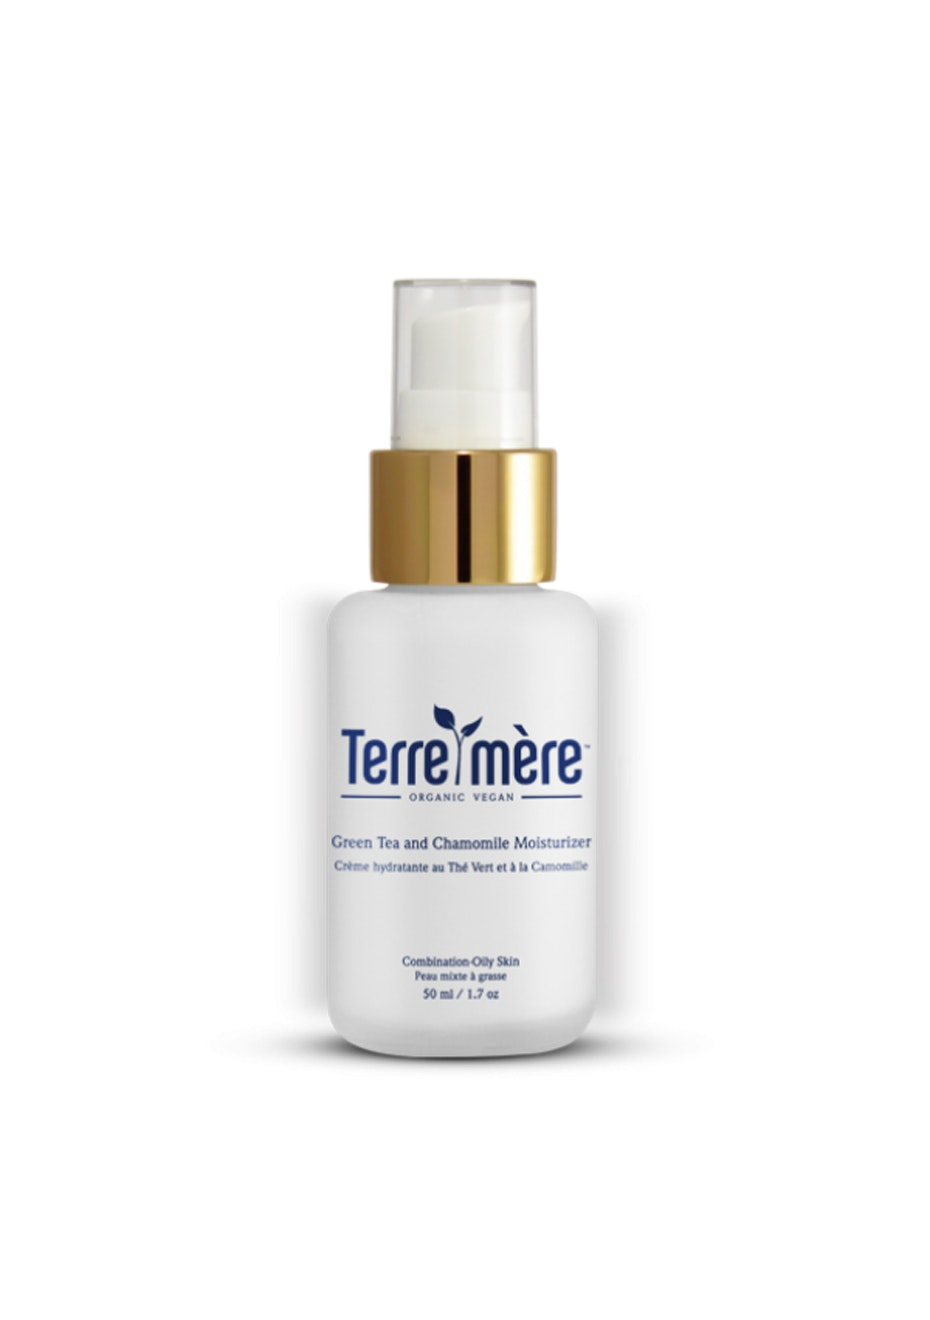 Terre Mere - Green Tea and Chamomile Moisturizer - Combination-Oily Skin